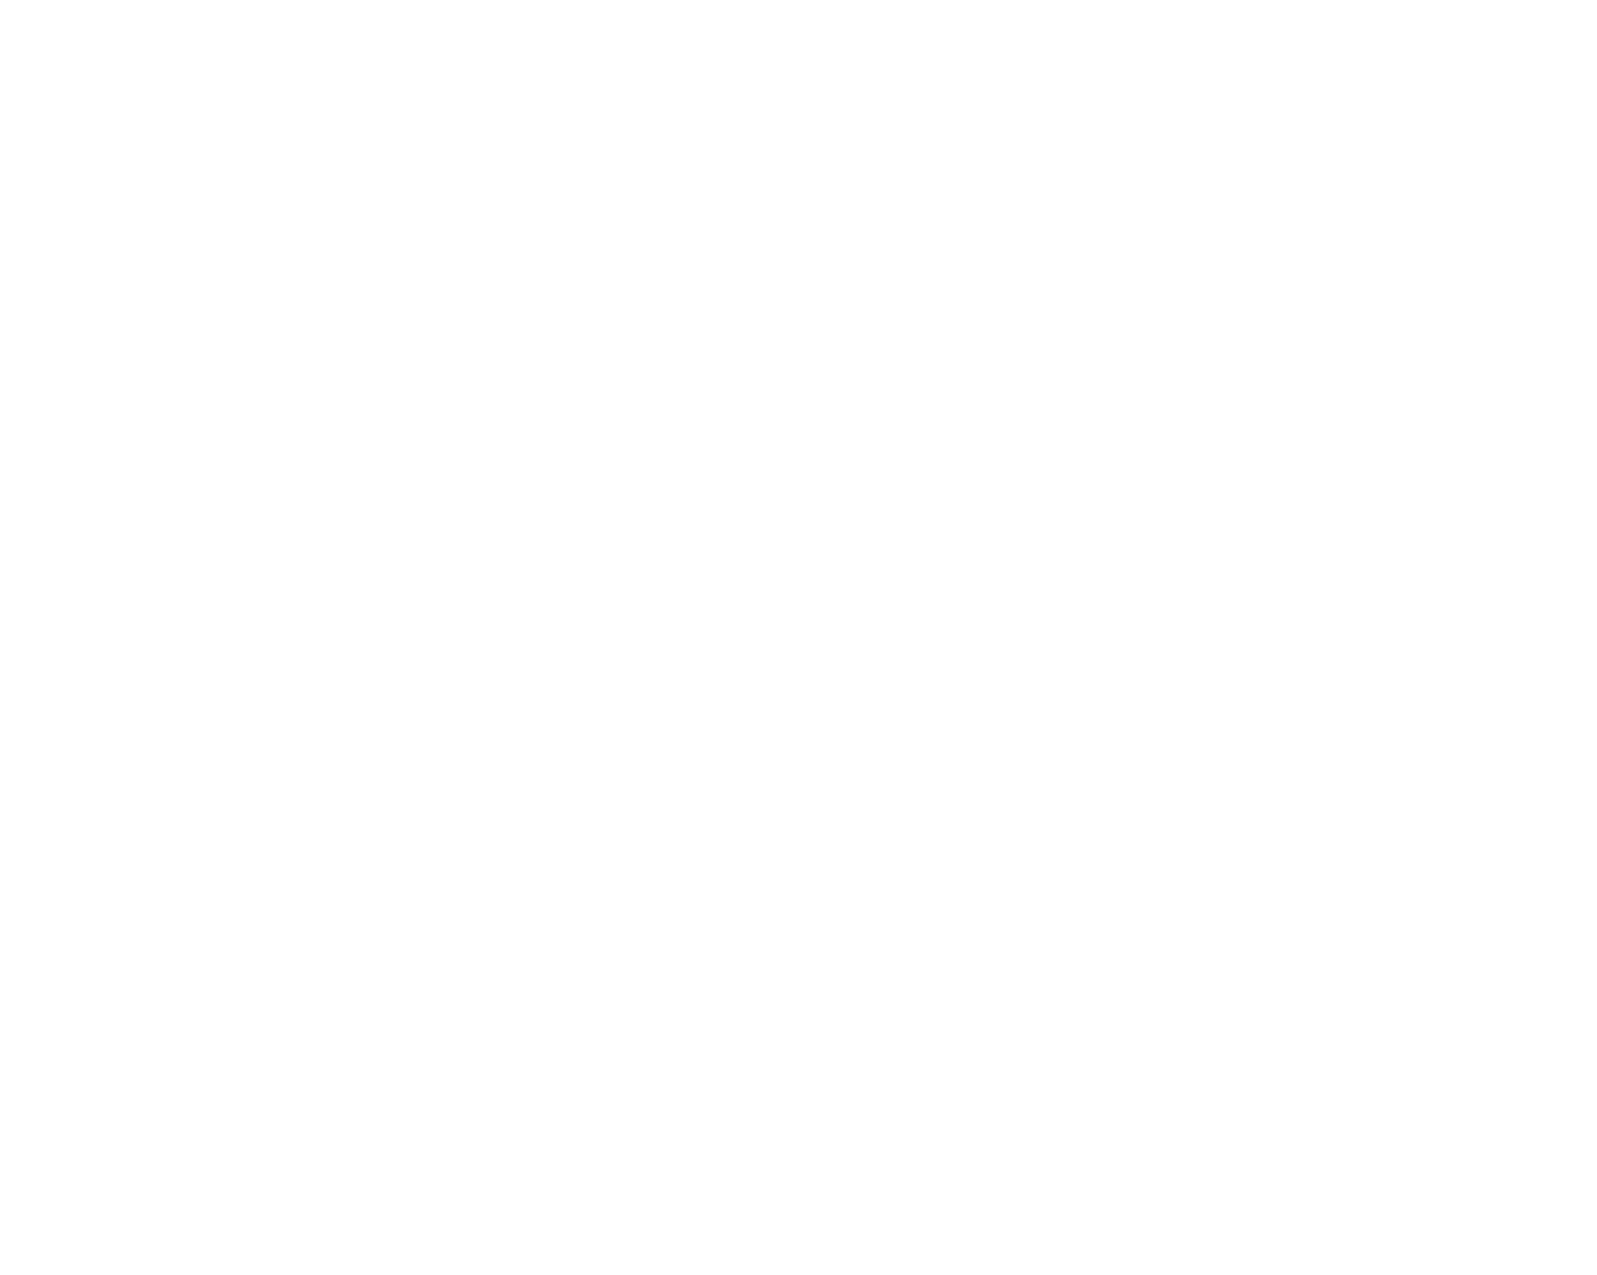 Droplet Trailer